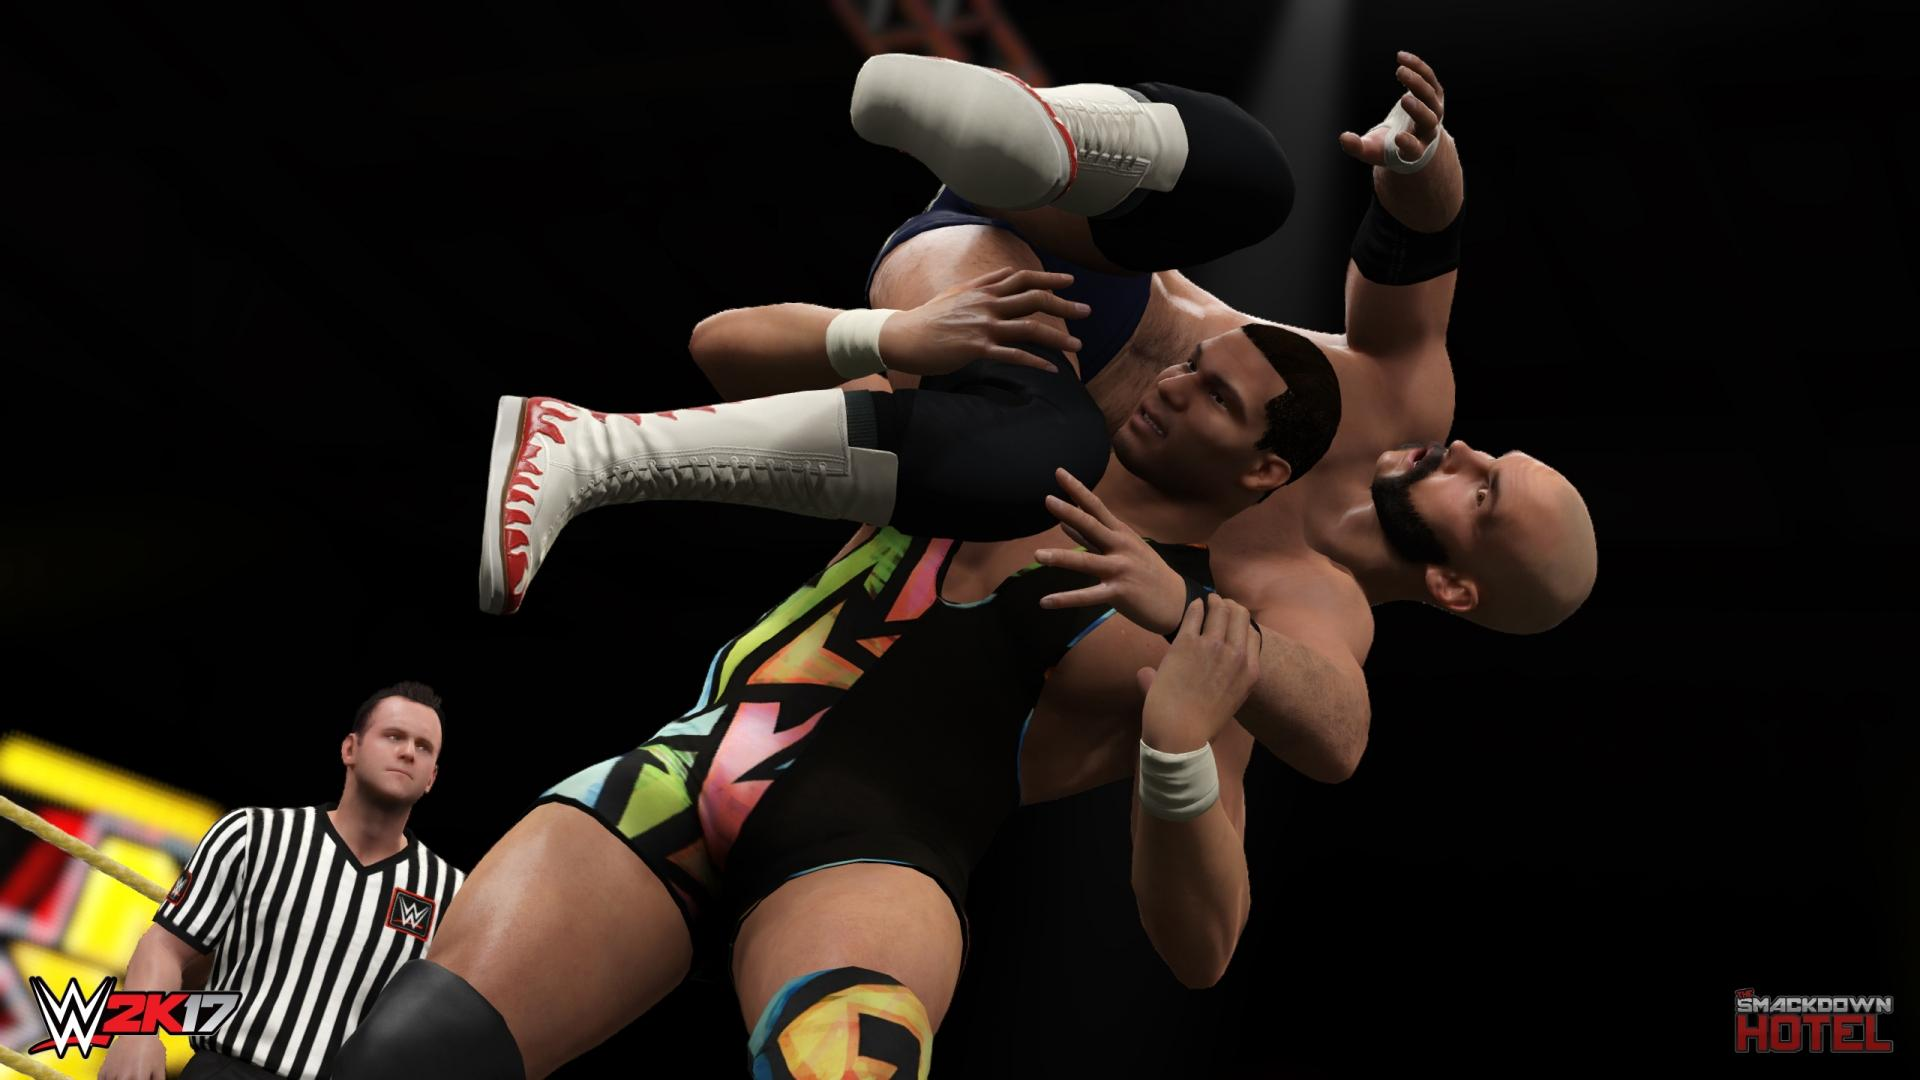 WWE 2K17 Update 1.05 for PS4 & Xbox One - Full Patch Notes